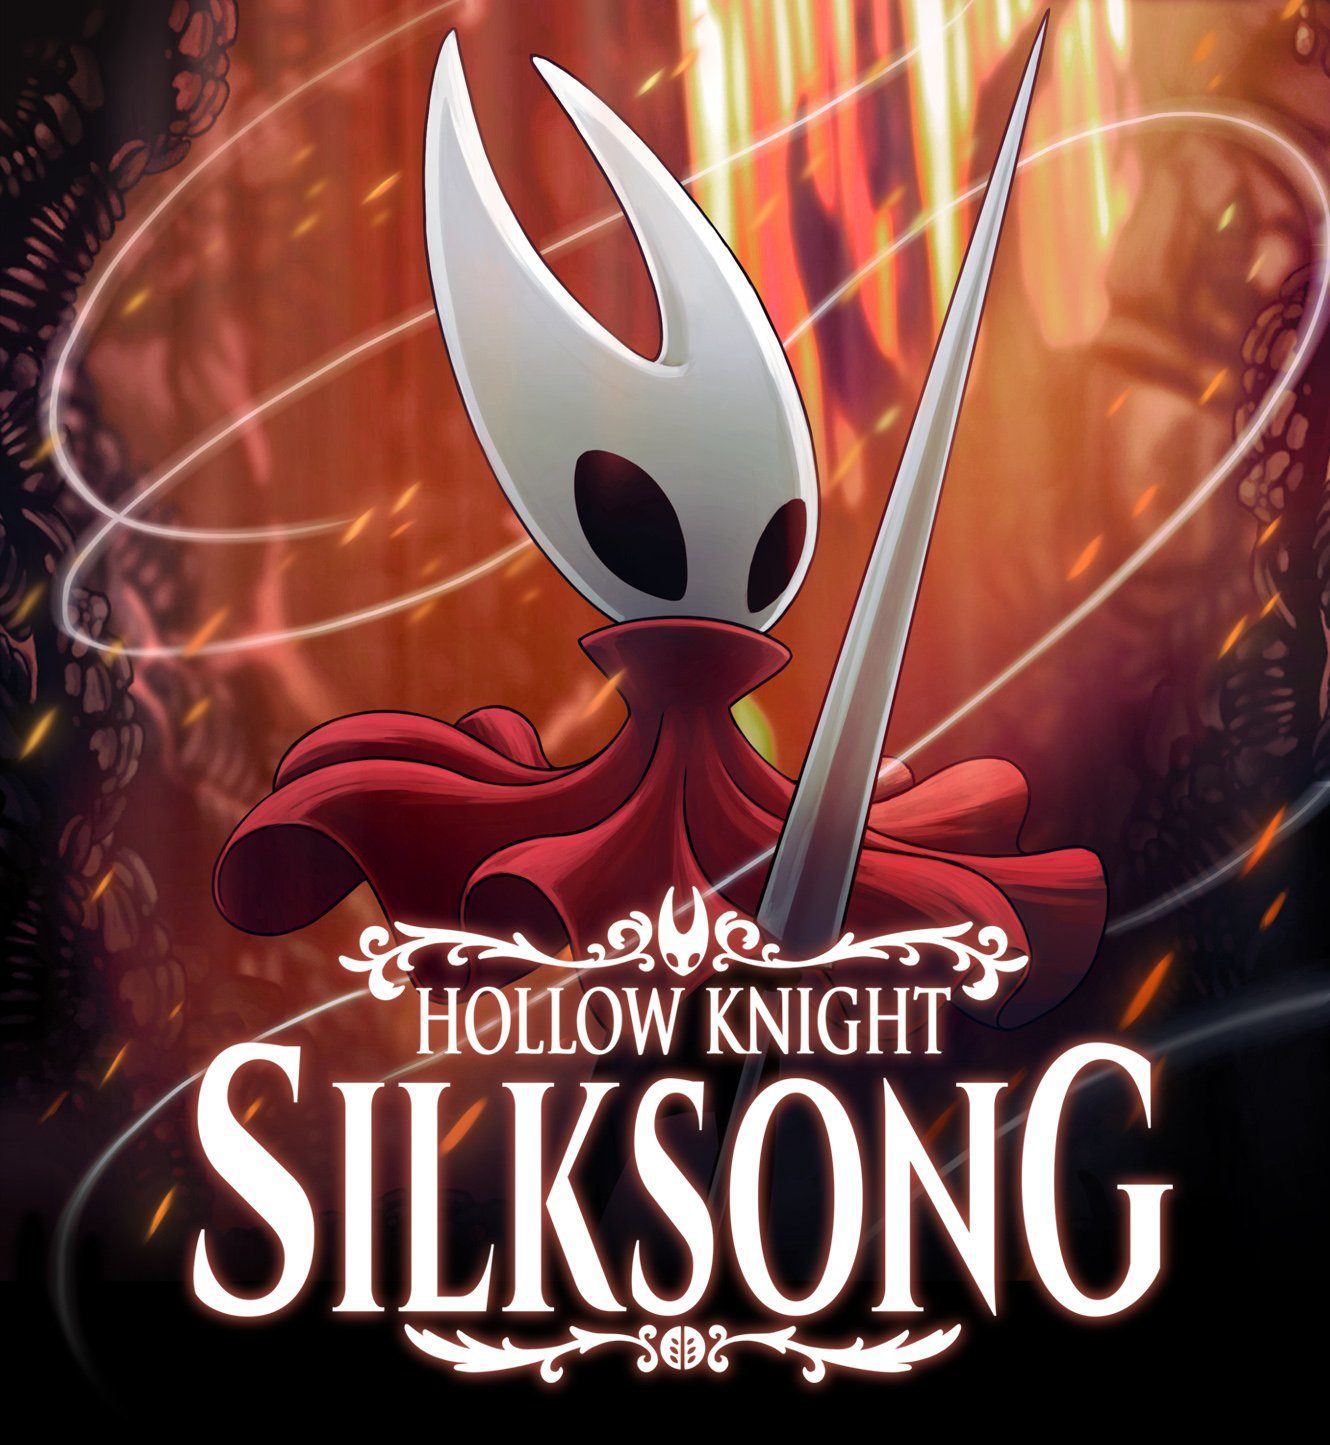 Hollow Knight: Silksong - Announcement Trailer - Nintendo Switch